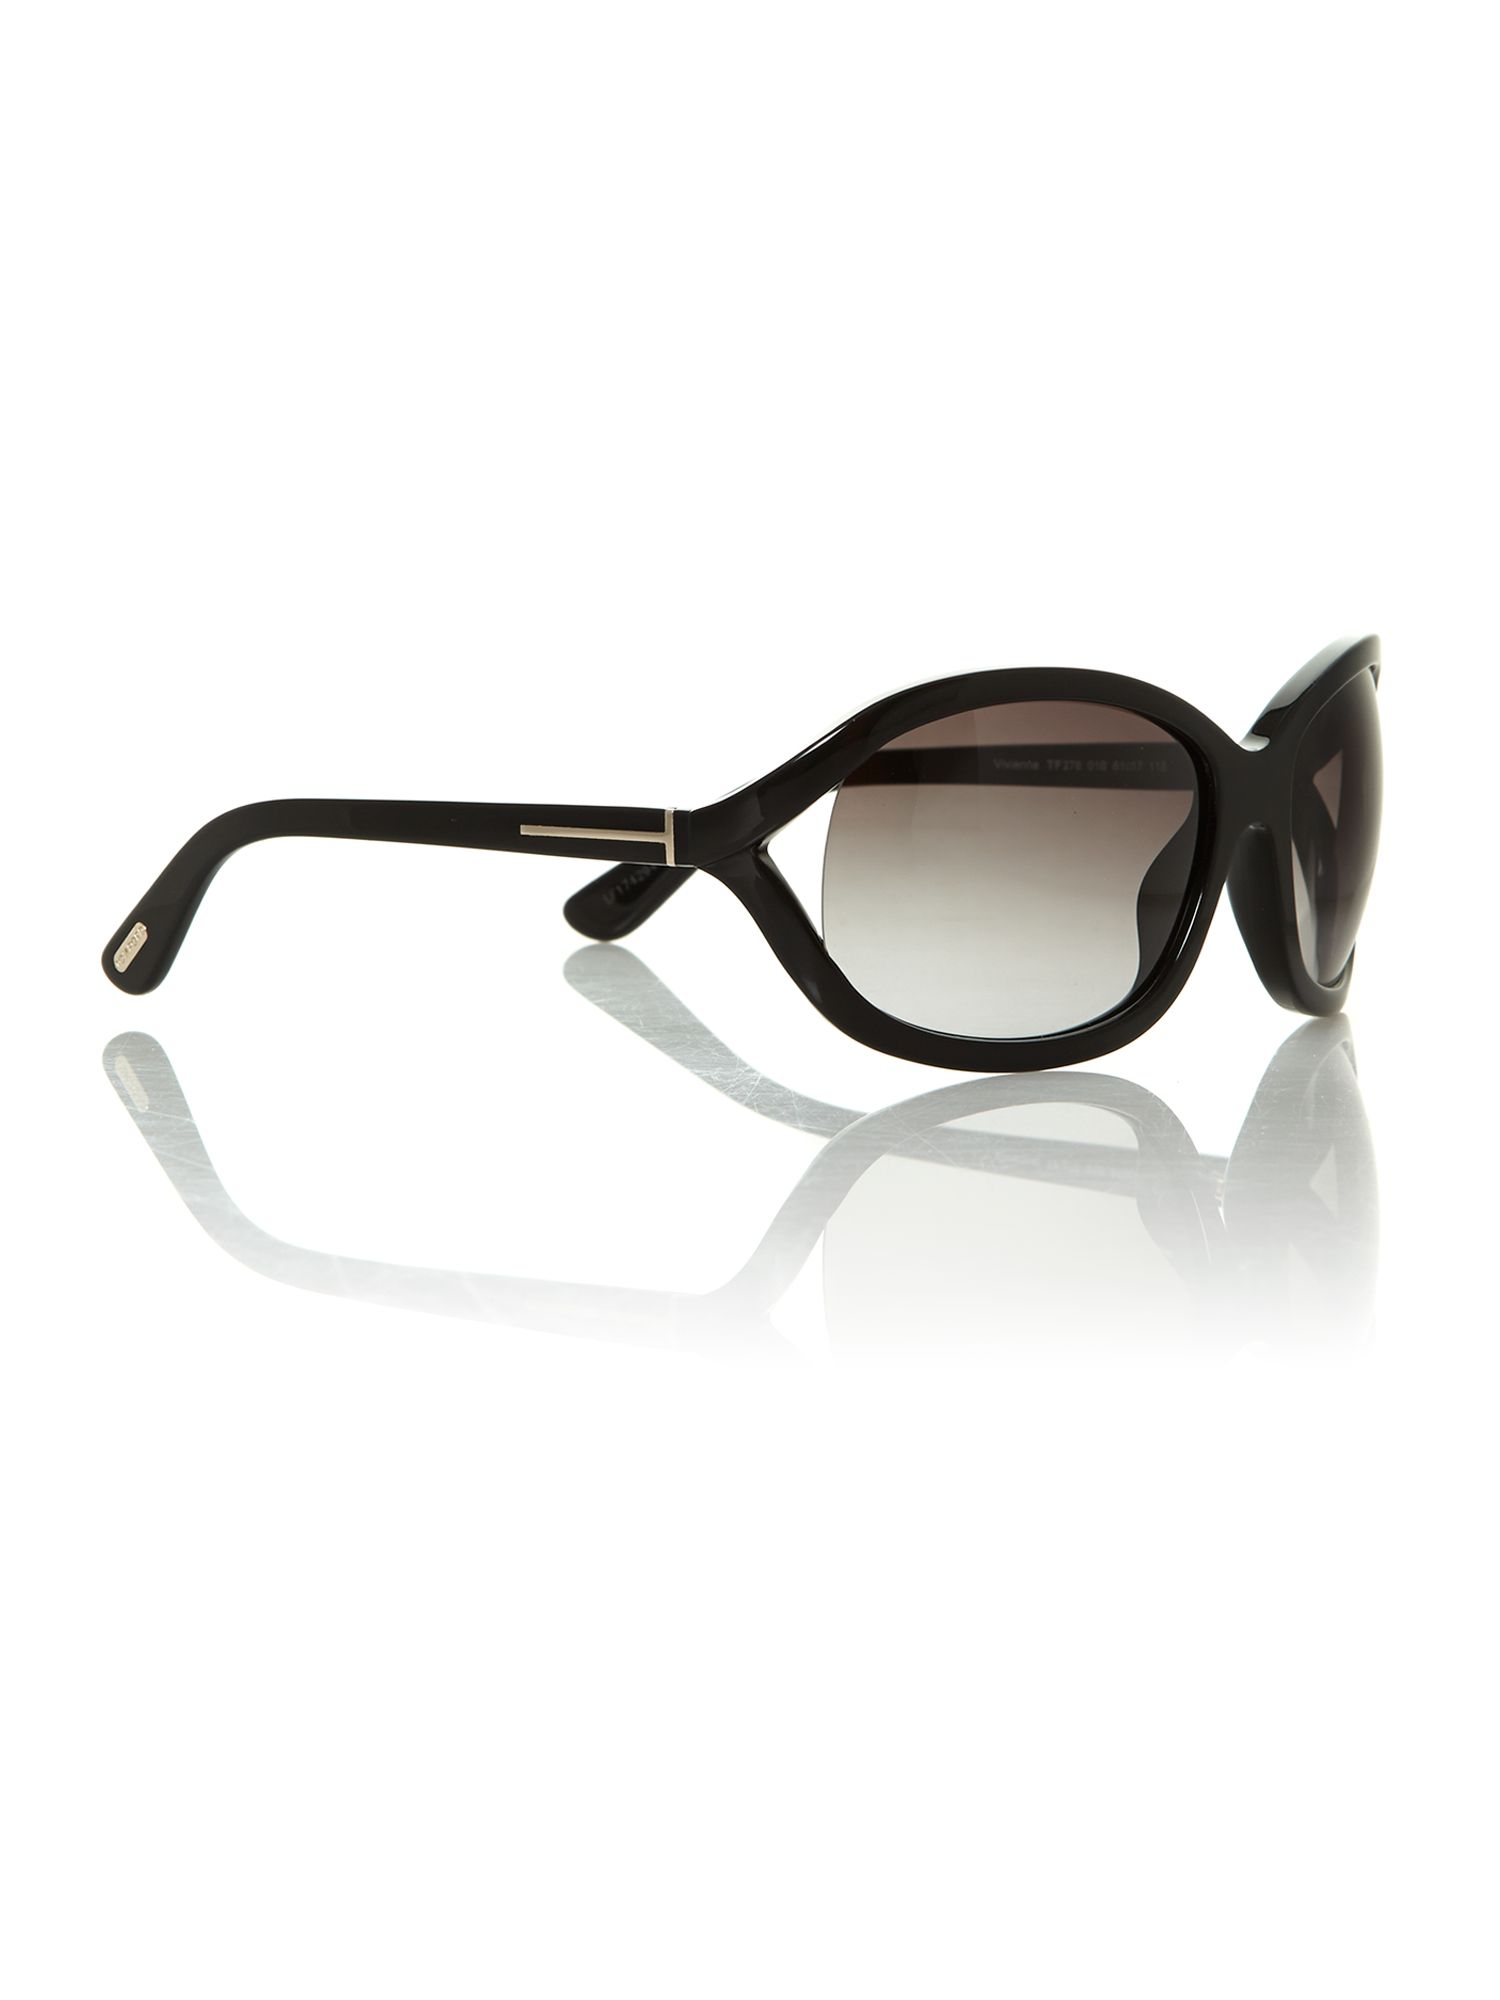 Ladies FT0278 vivenne sunglasses